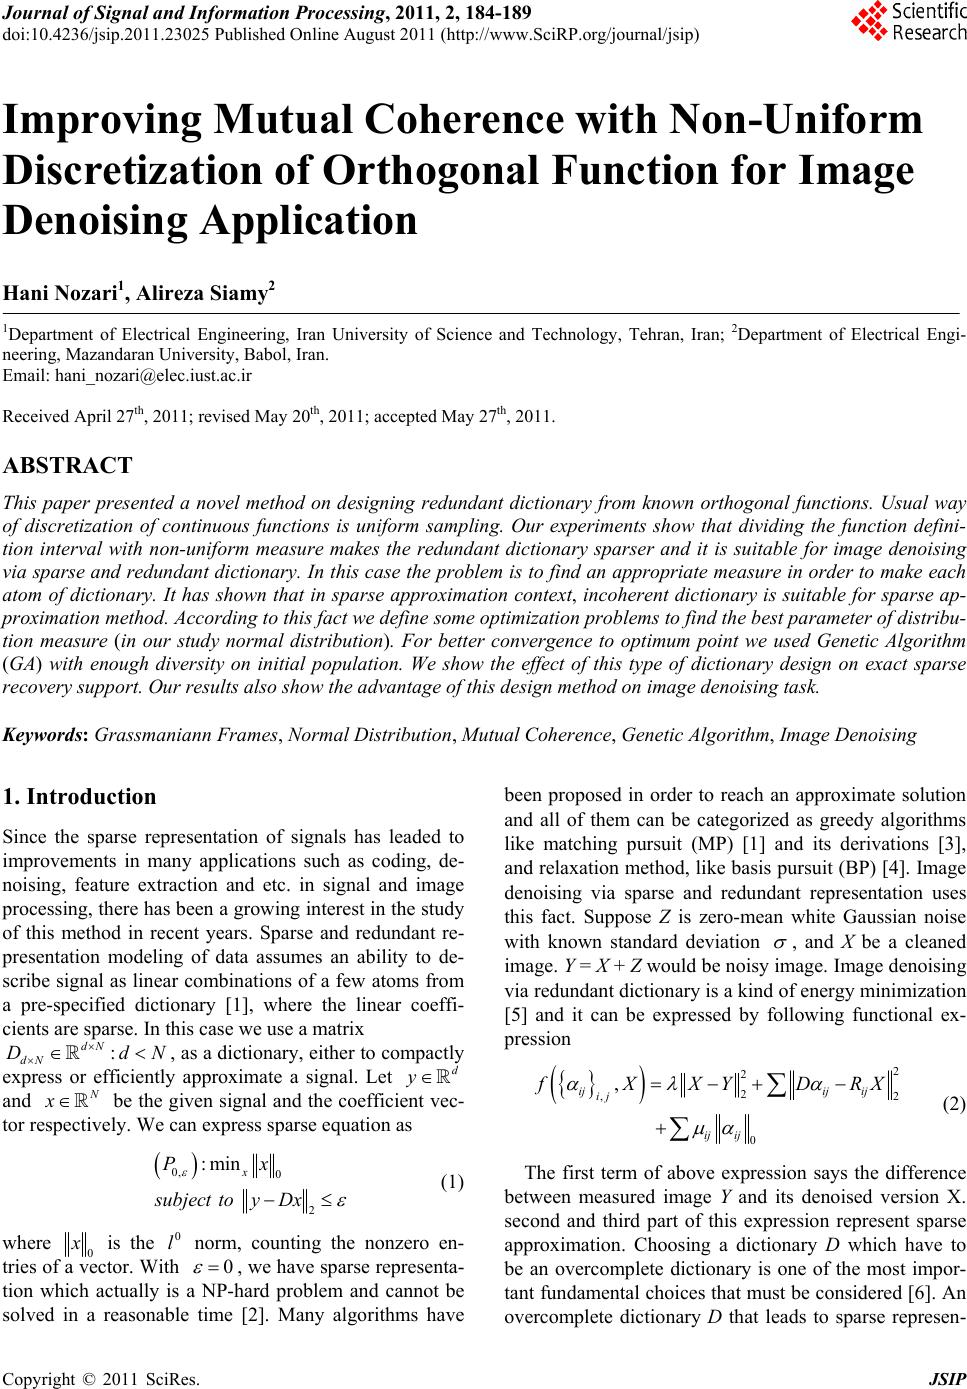 thesis report on image denoising Image denoising, bm3d, parallel, gpgpu, cuda  this thesis presents both: the basic aspects of the gpu computing and the bm3d method itself  defence's report .